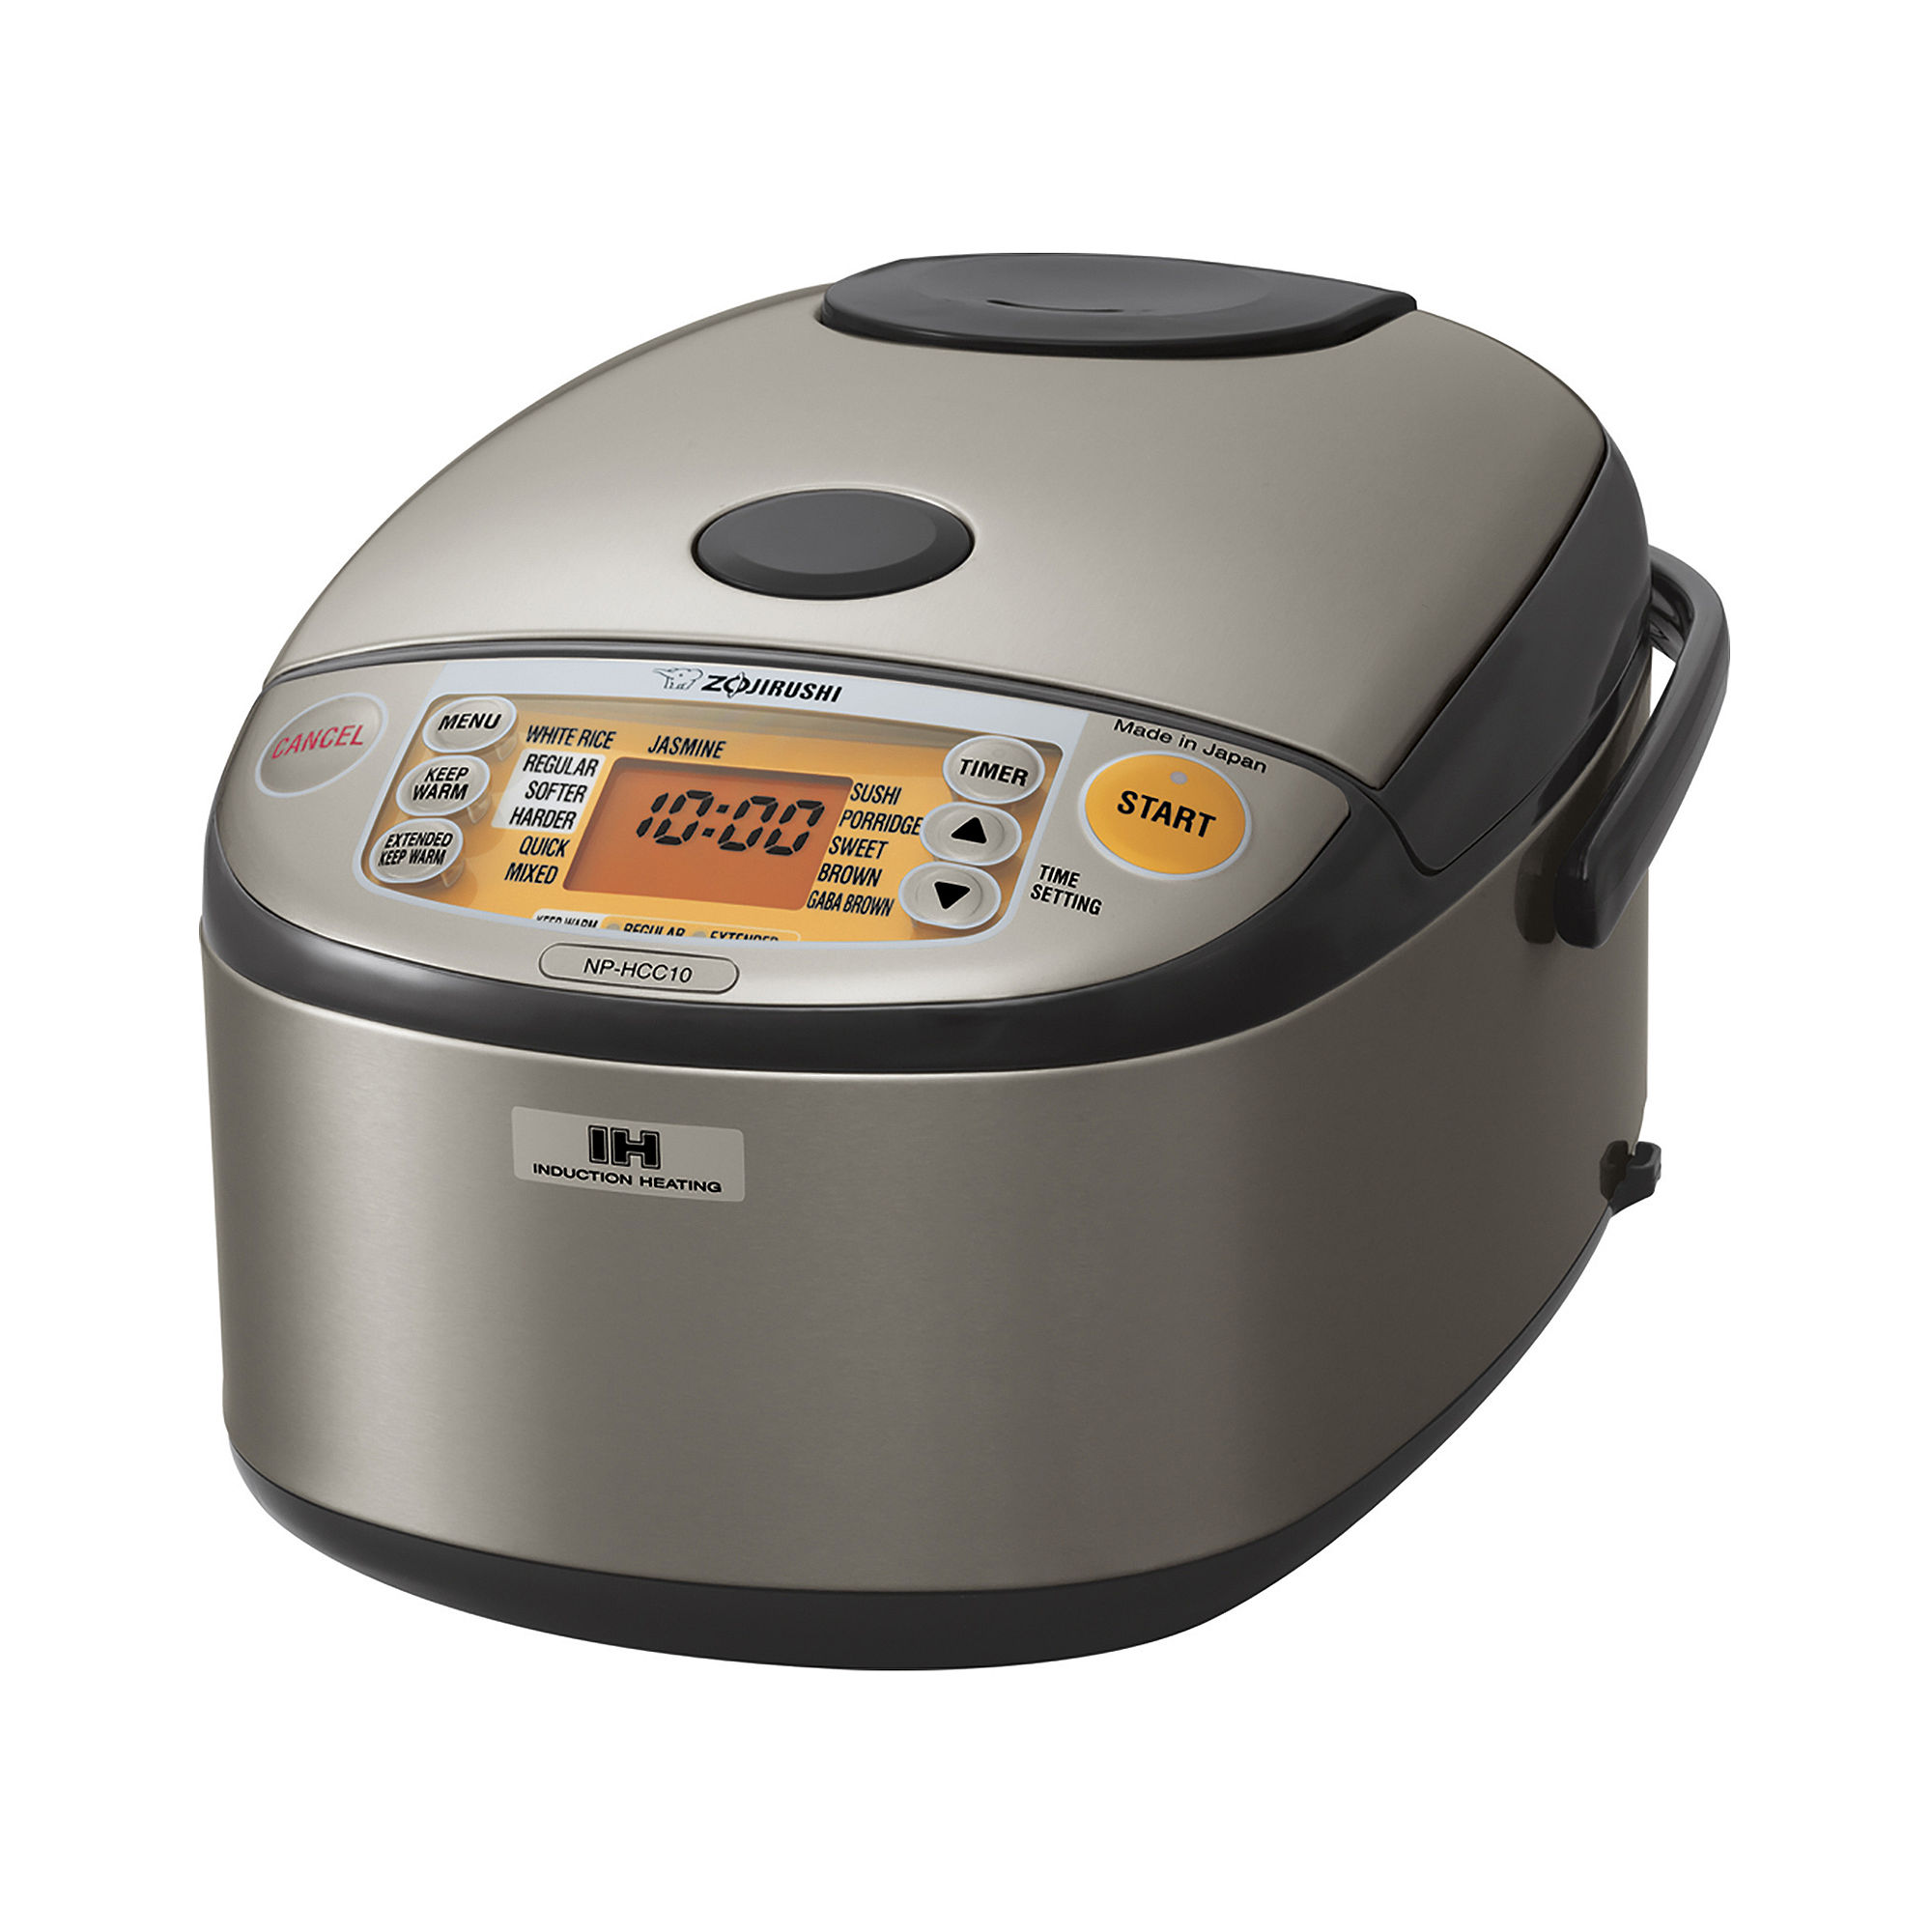 5-Cup Induction Heating System Rice Cooker and Warmer